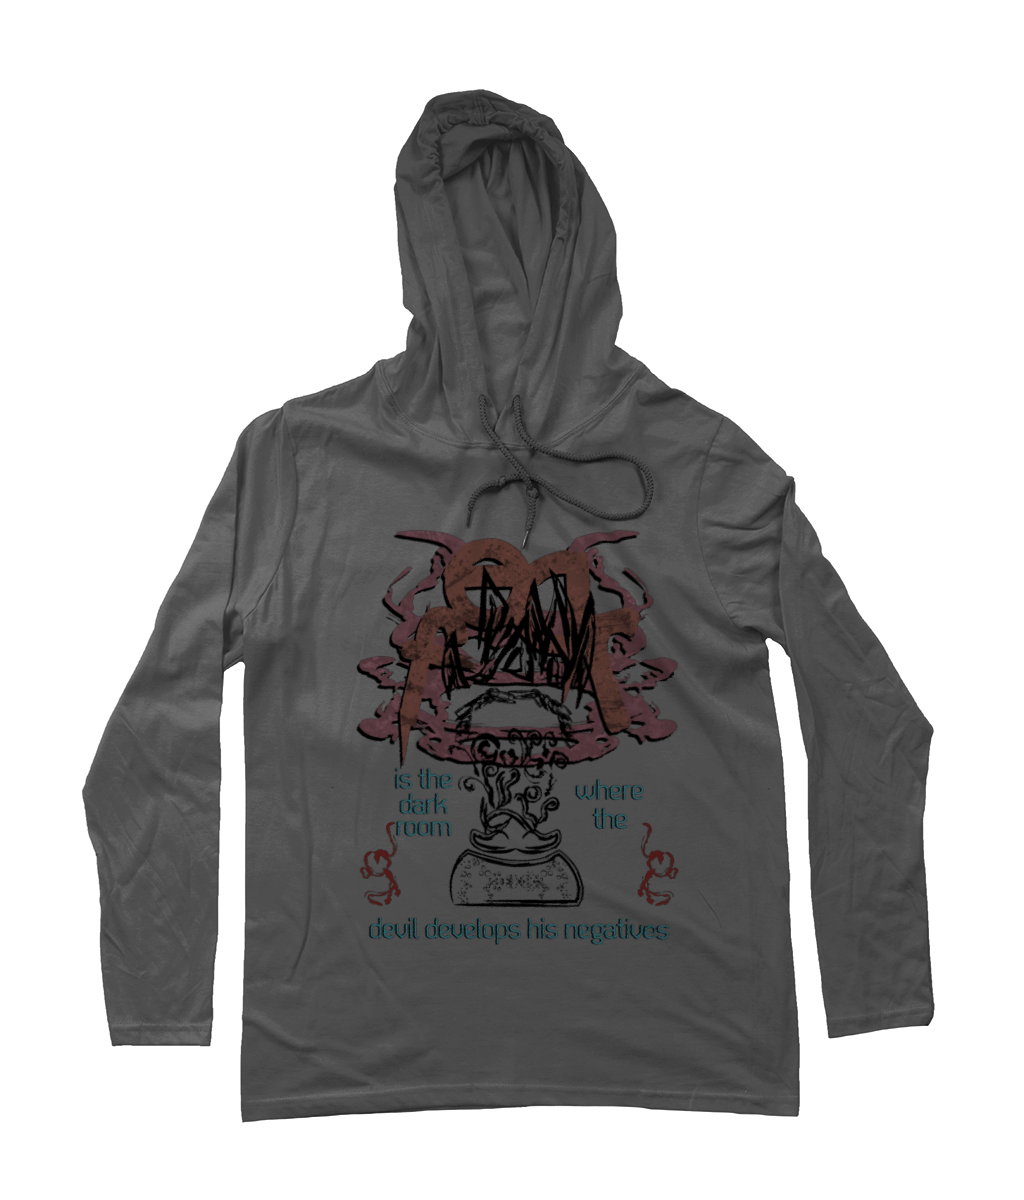 FEAR_Long-Sleeved [Heather Grey, Front Print] Hooded Mens T-Shirt